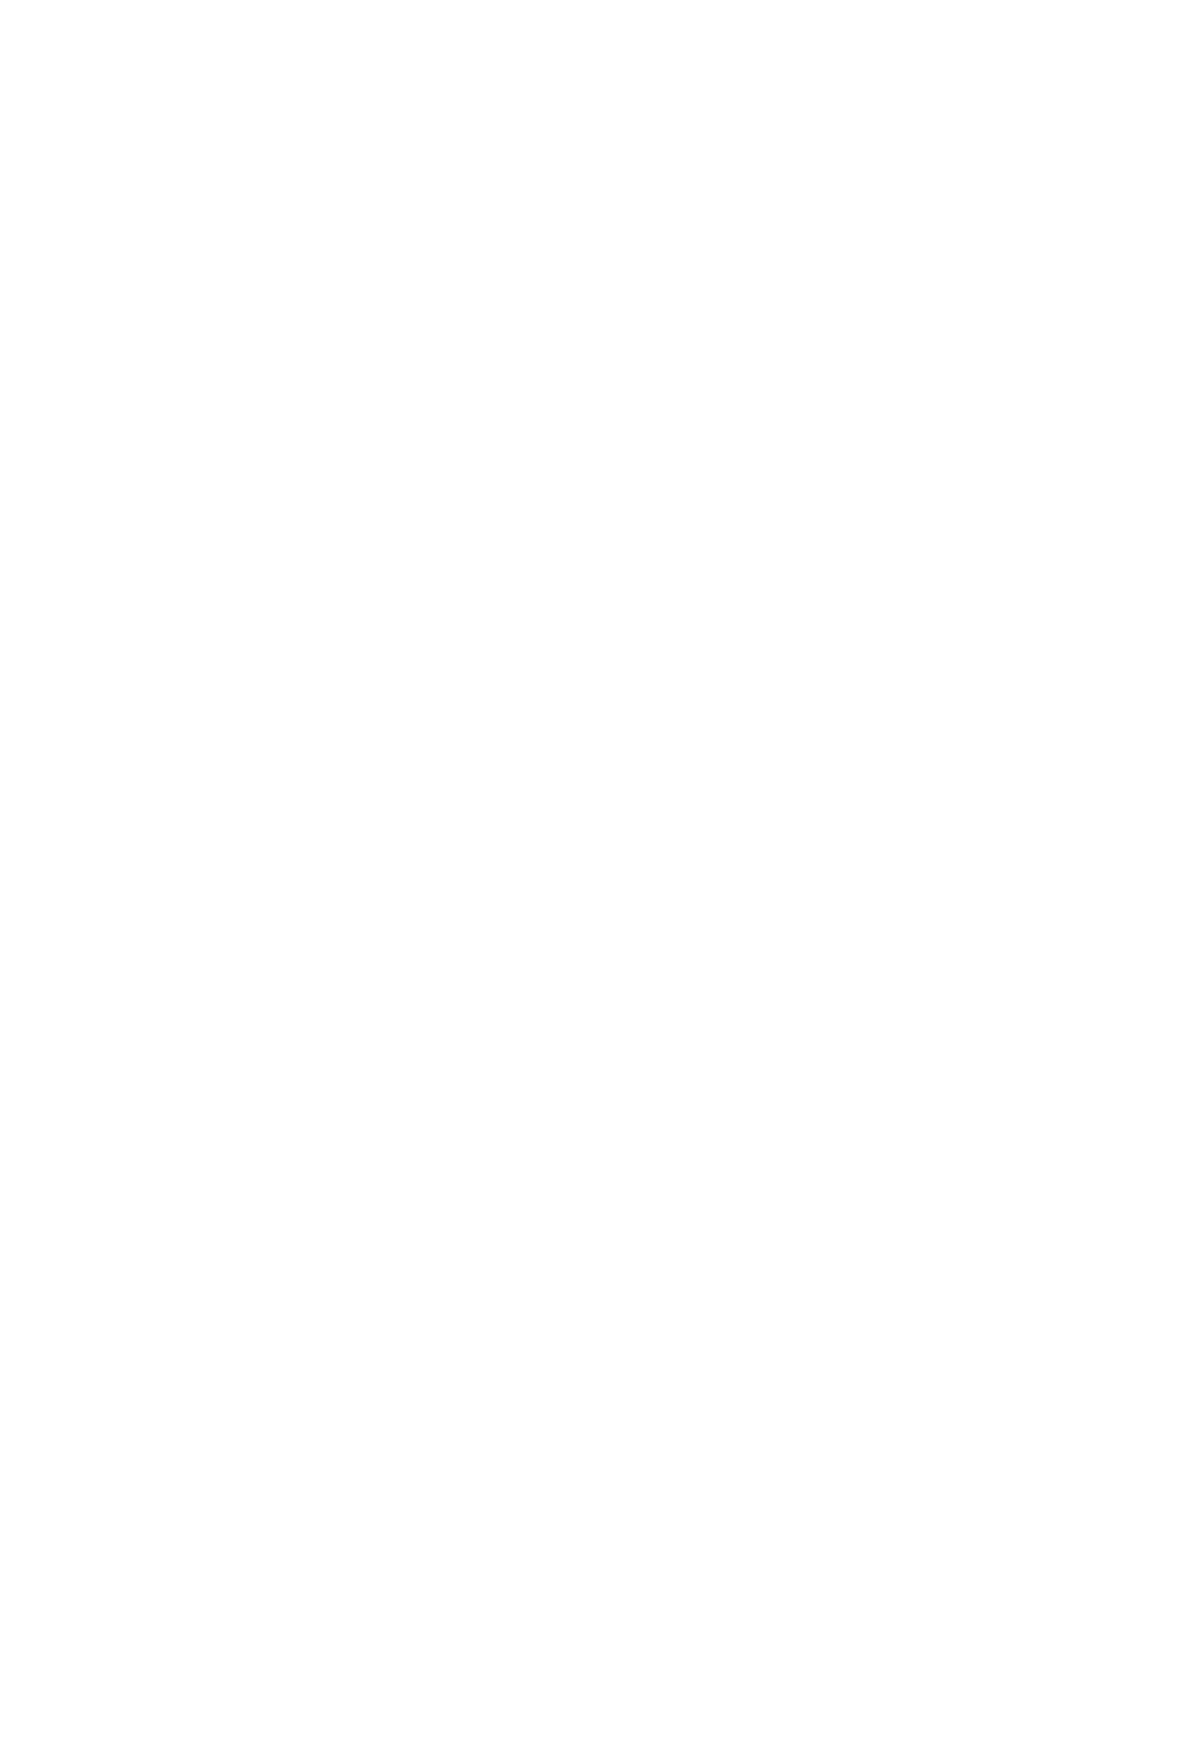 the-artisan-logo-01